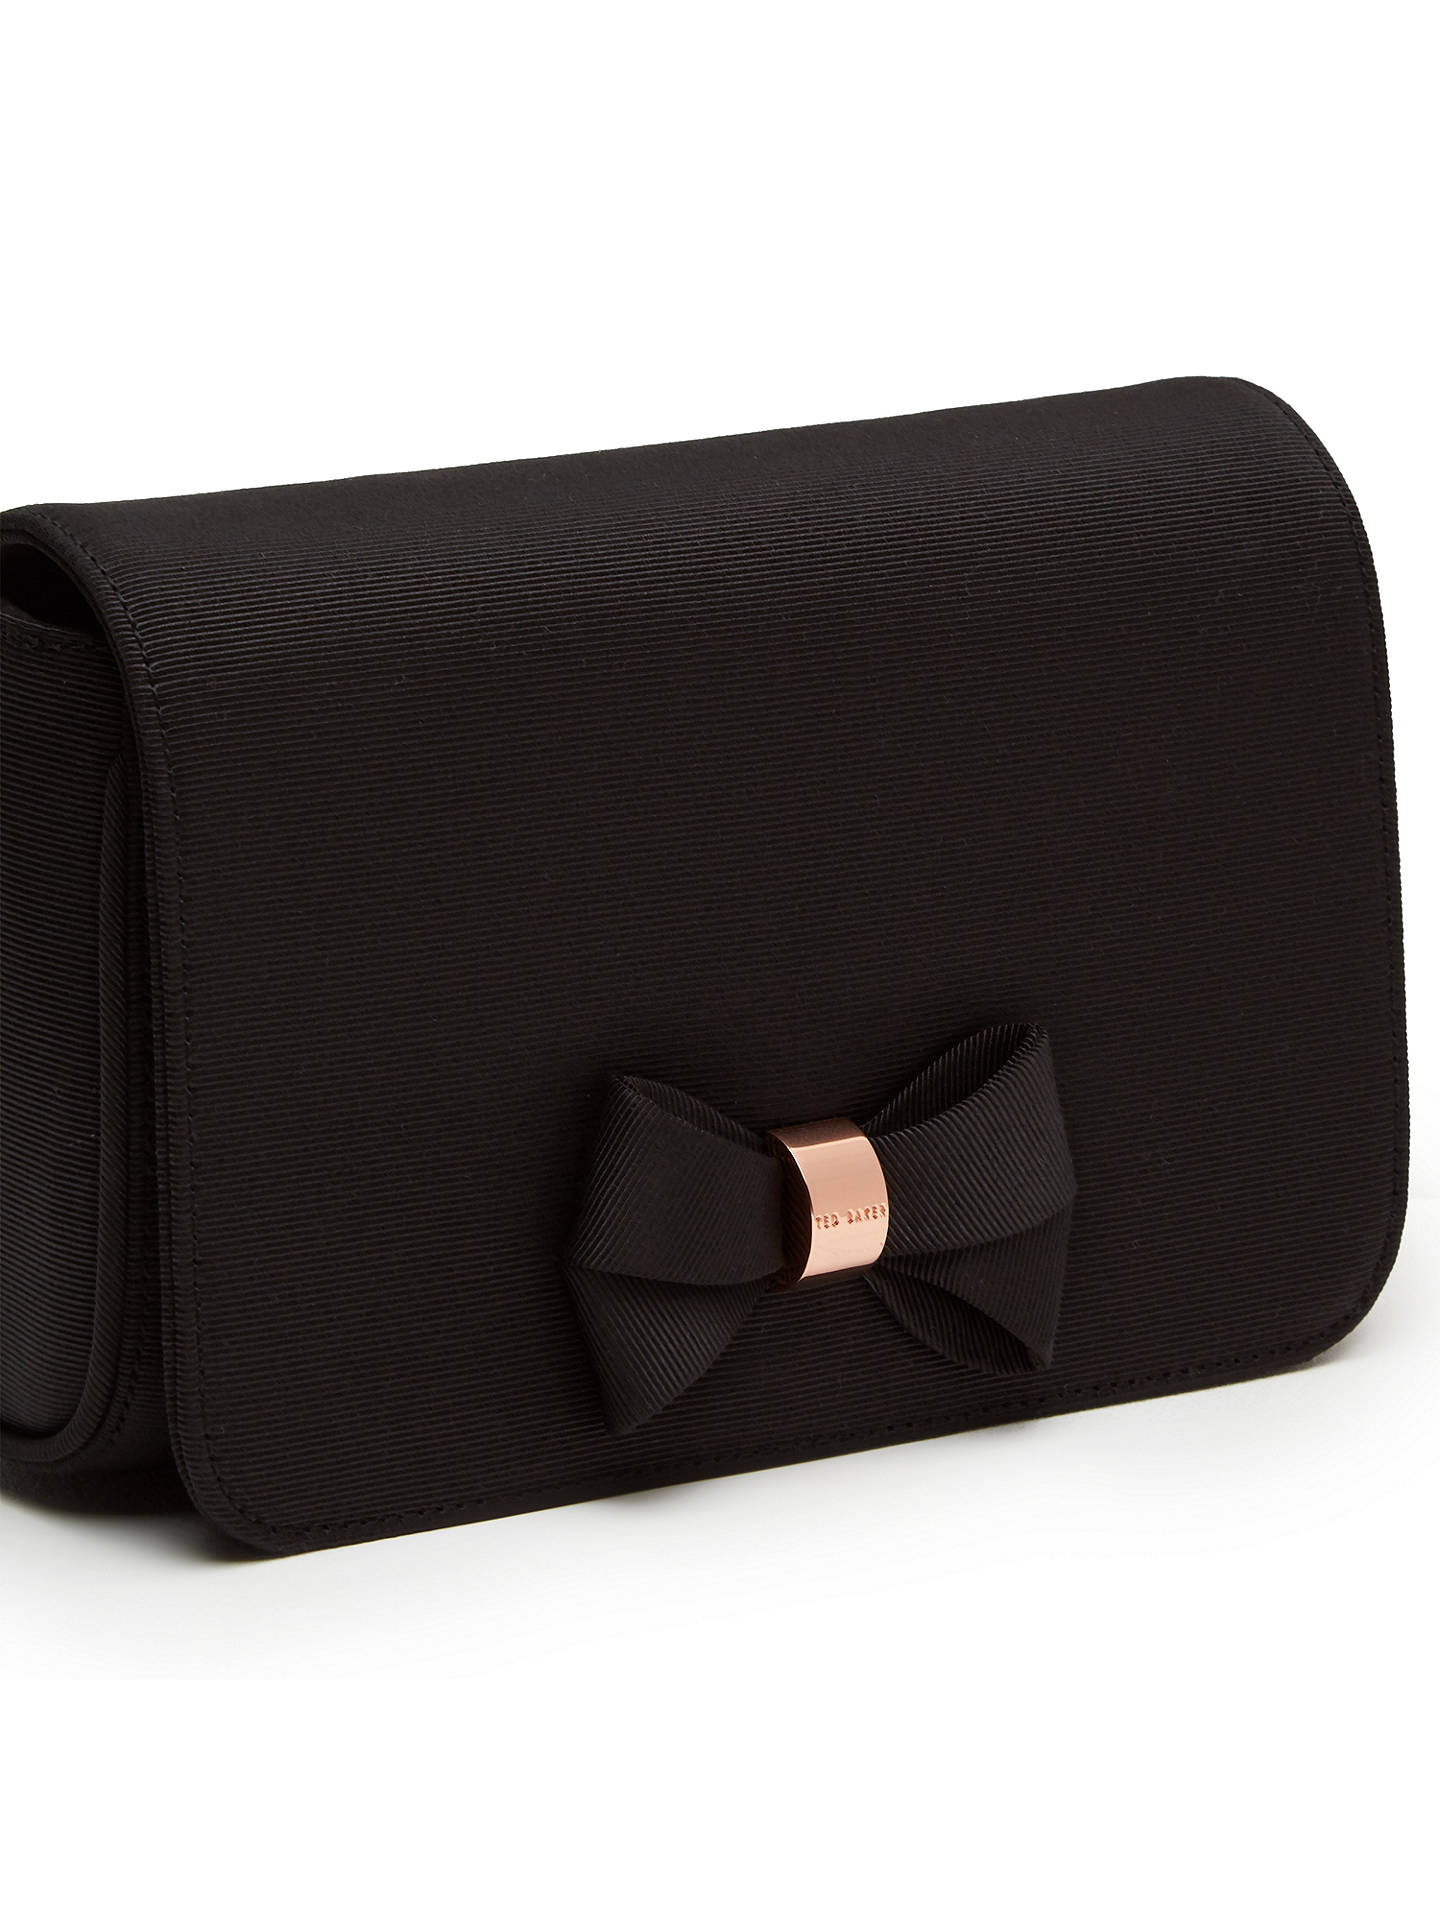 3f03c783d8766 Ted Baker Brandii Bow Clutch Bag at John Lewis   Partners